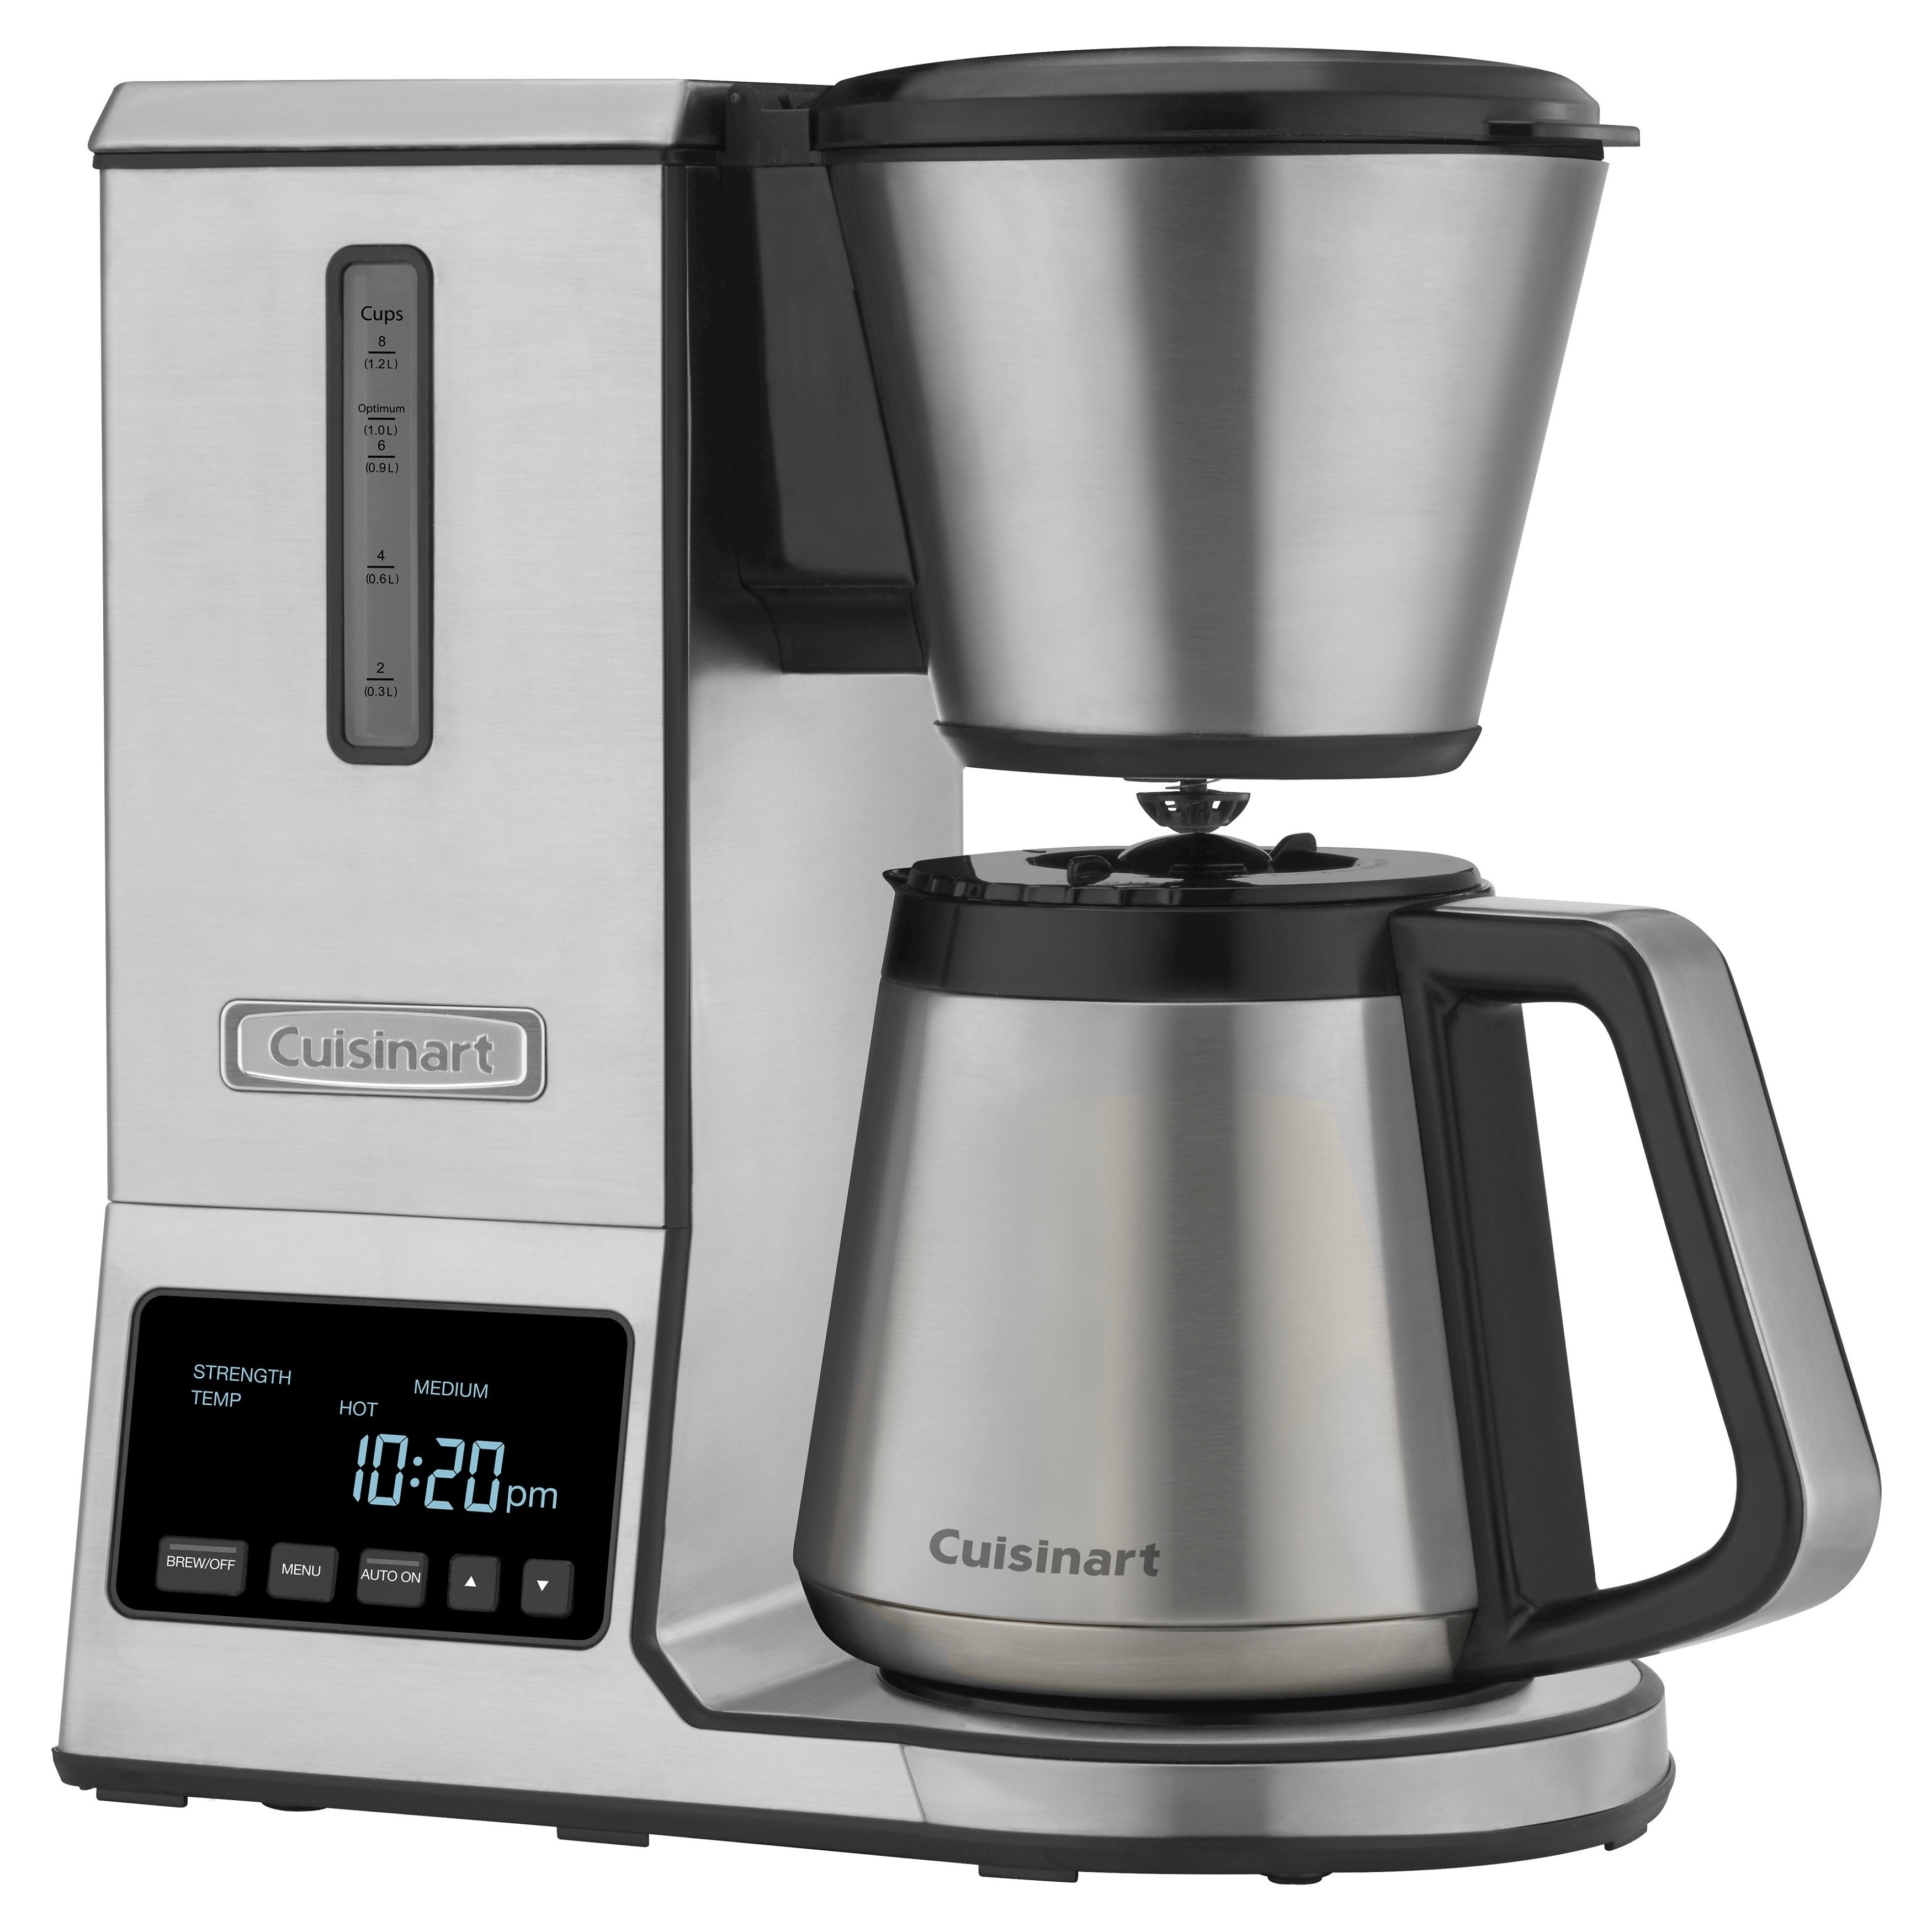 Cuisinart Cpo 850 8 Cup Coffee Brewer Coffeemaker W Thermal Carafe Free Shipping Today 11552650